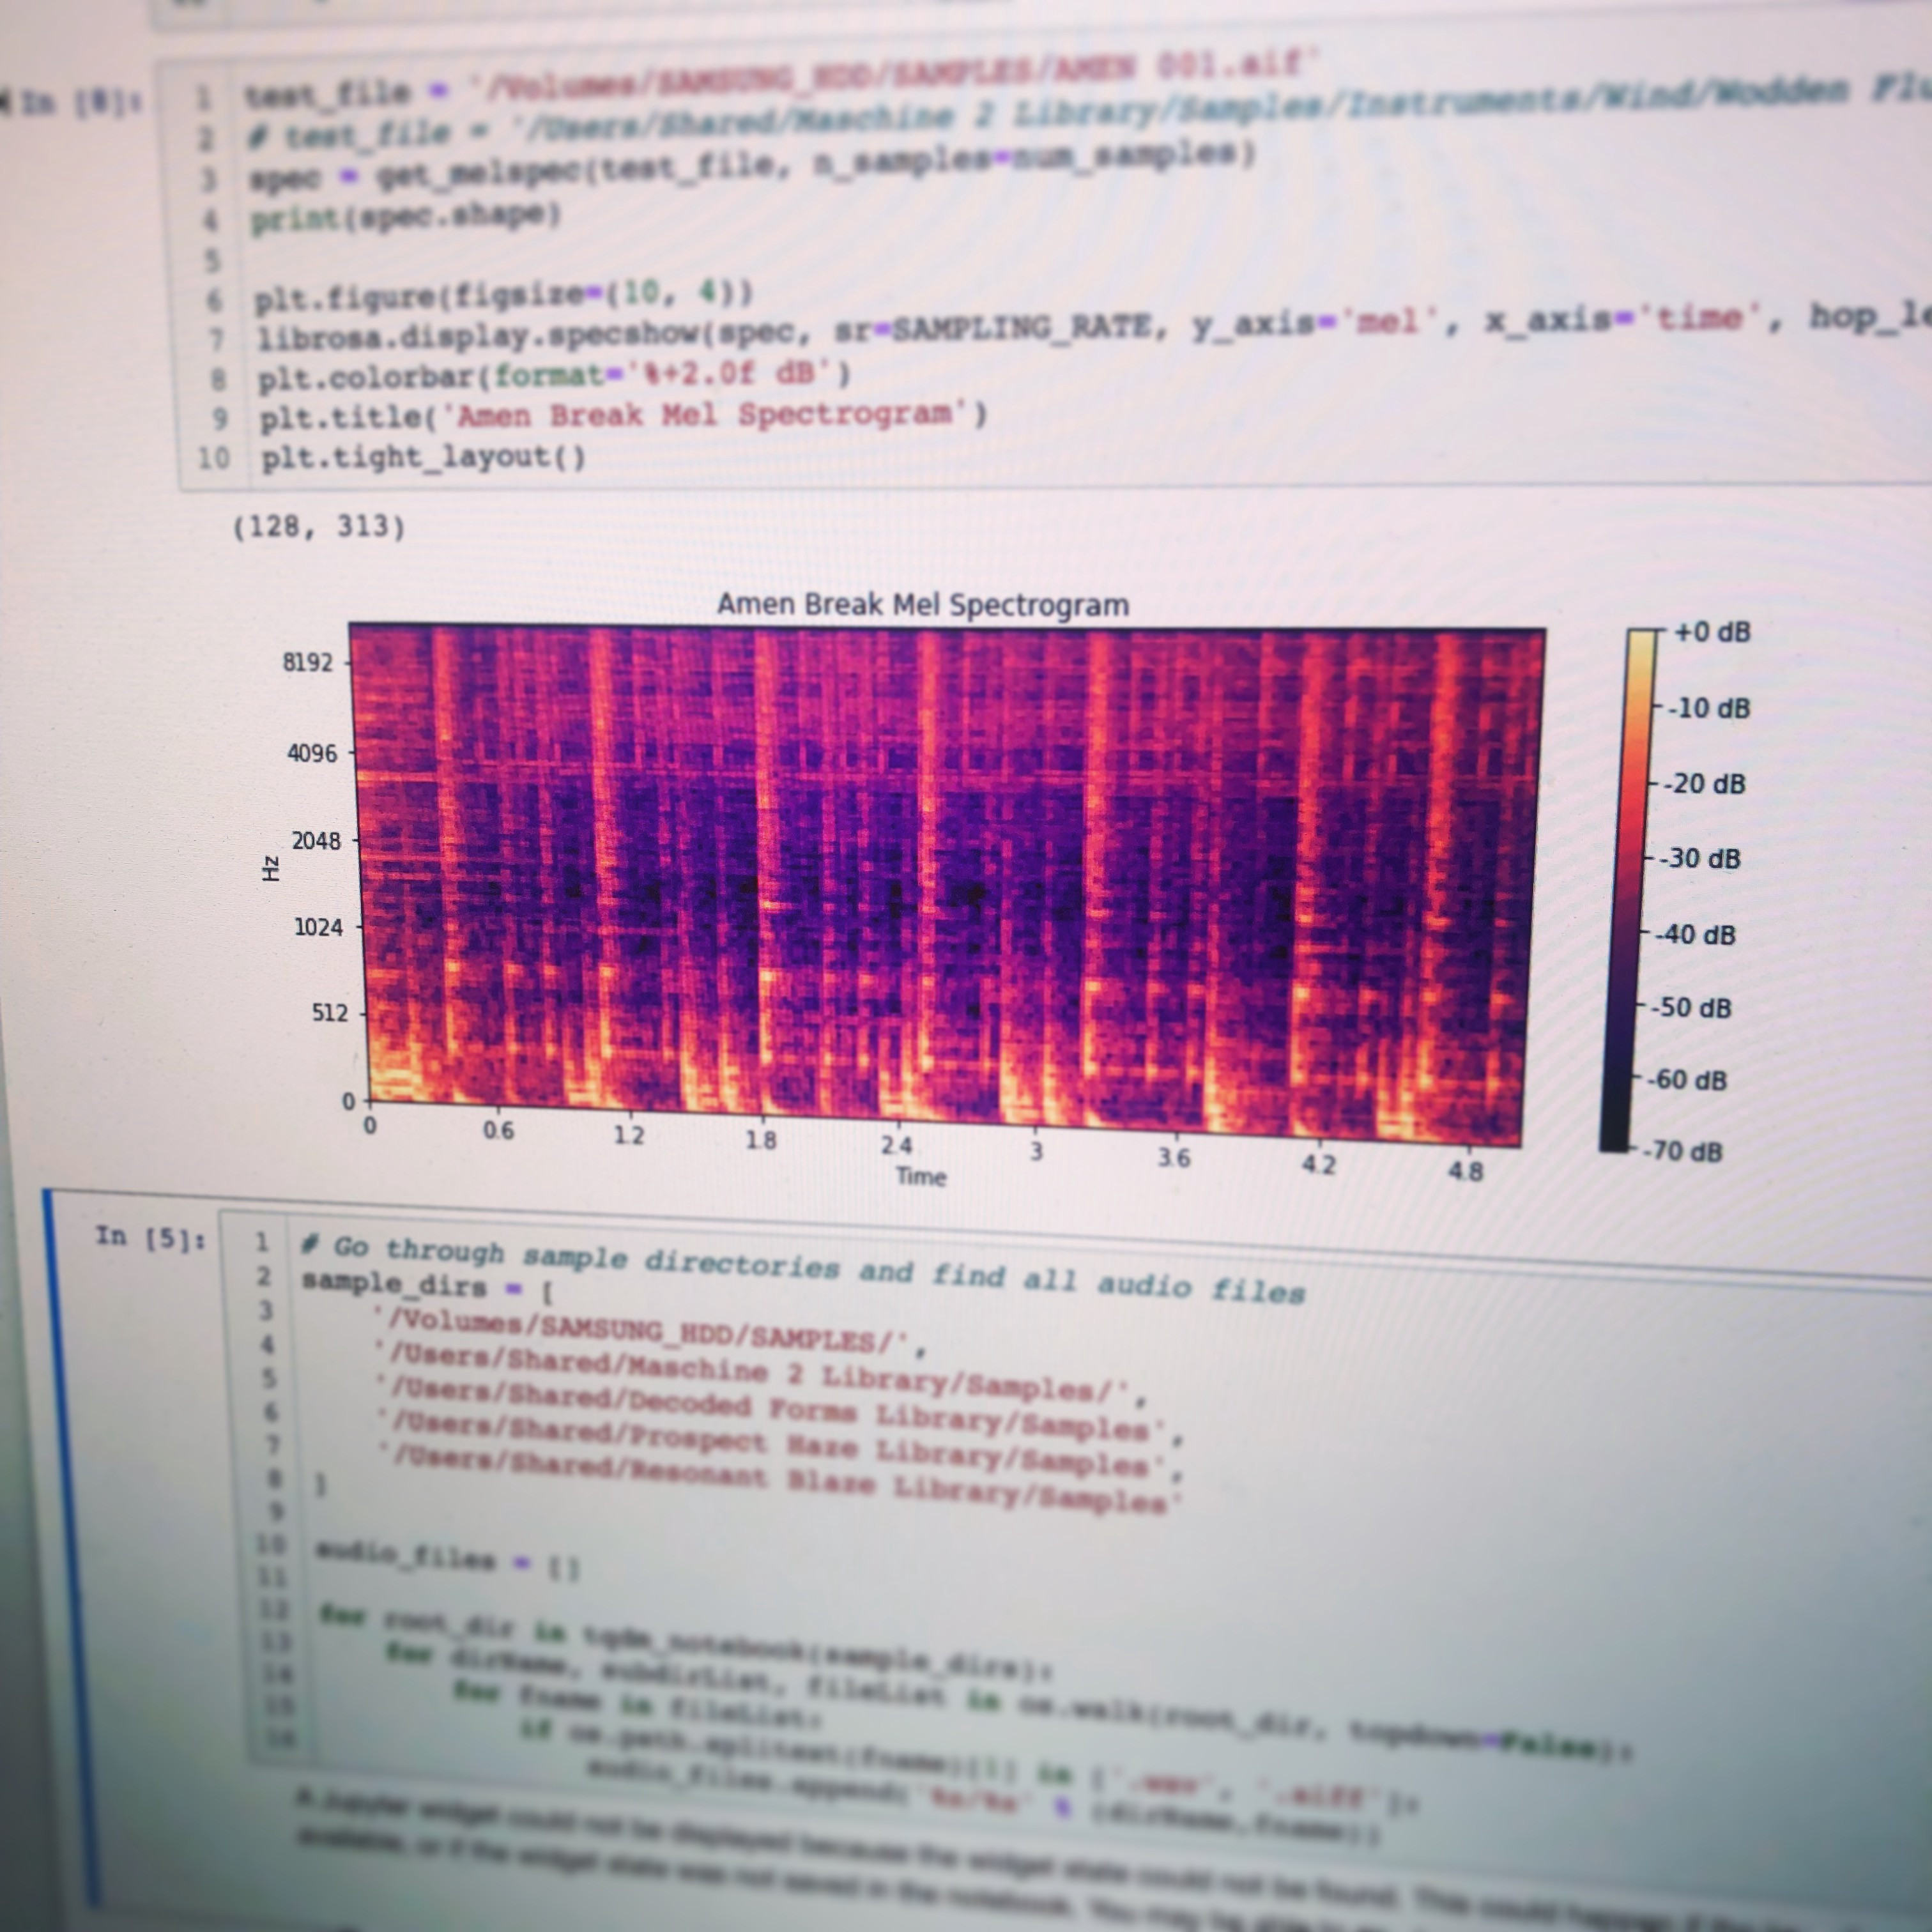 NeuralFunk - Combining Deep Learning with Sound Design